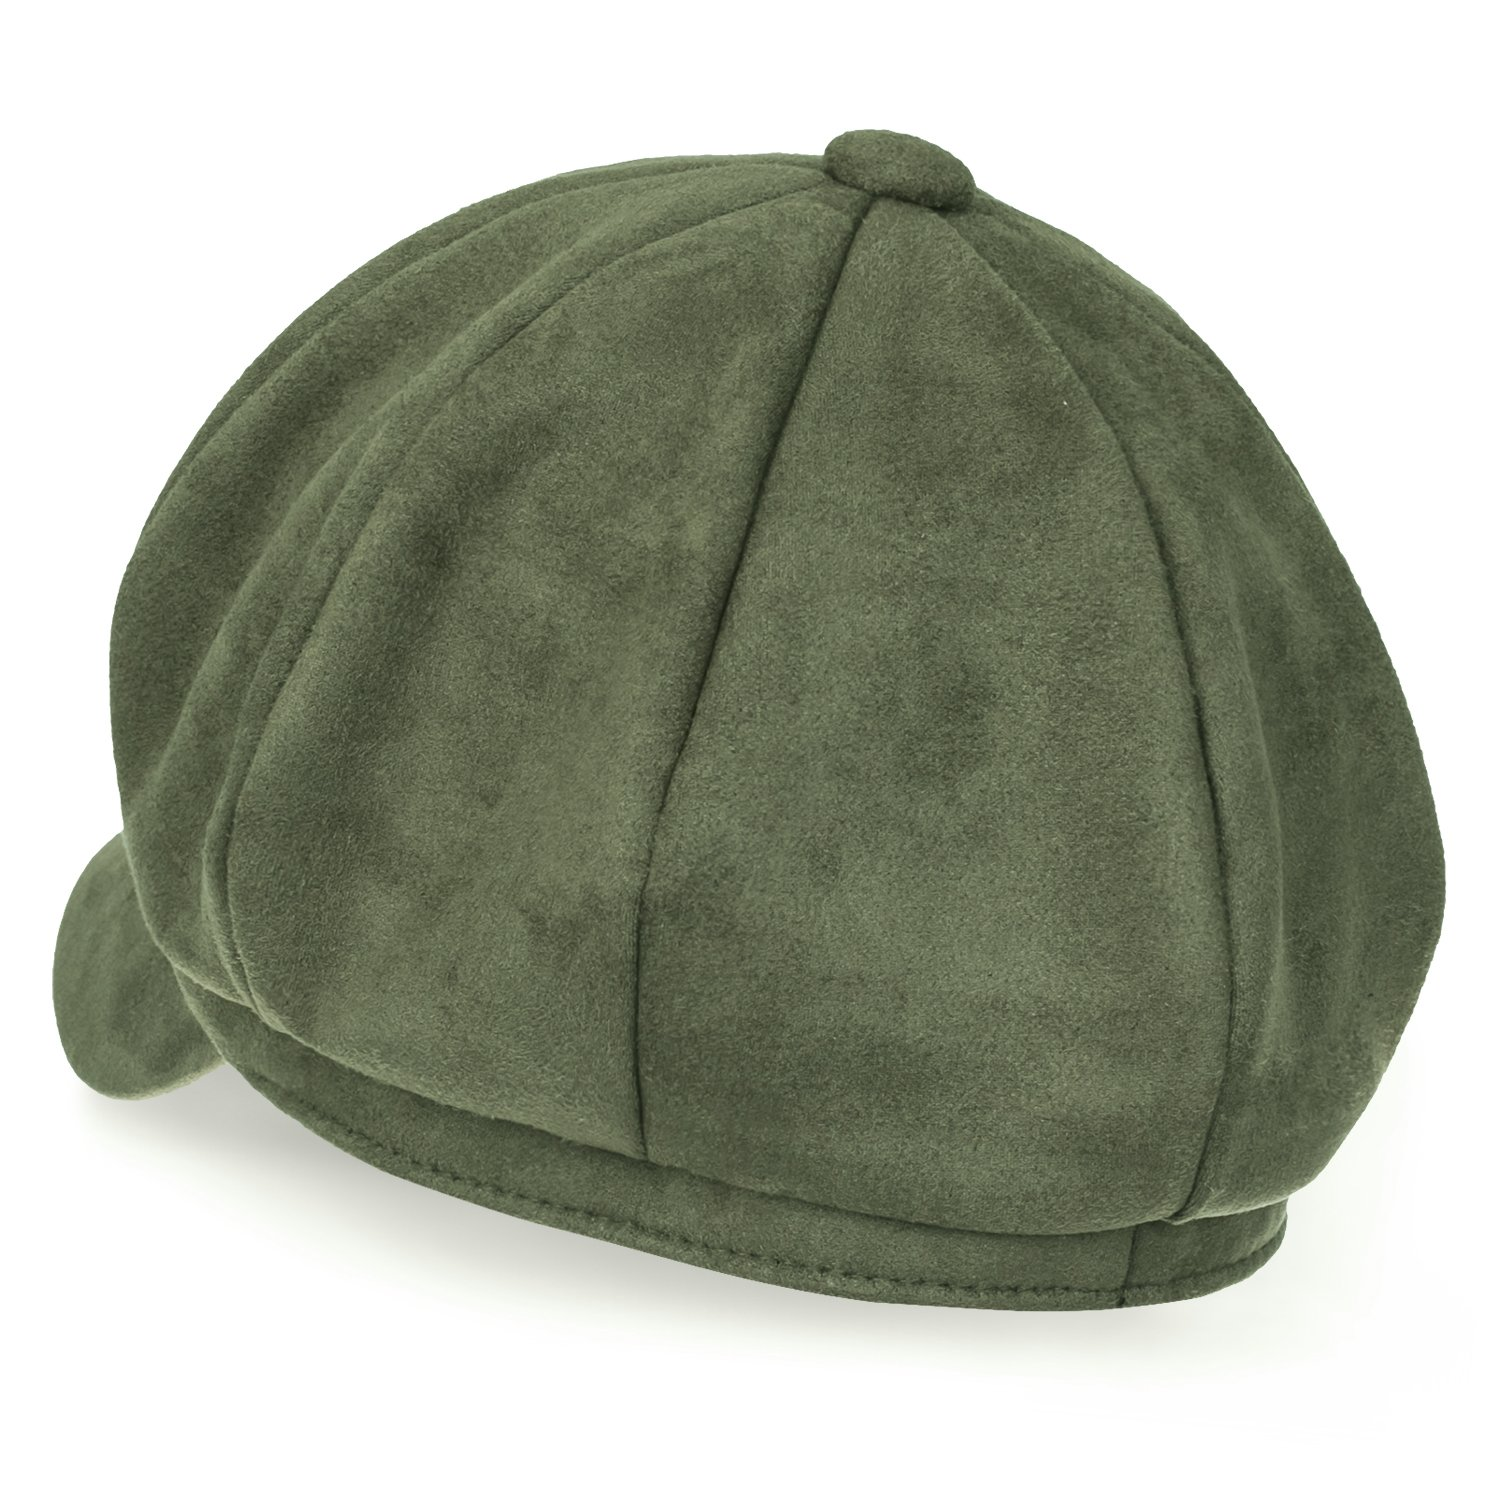 Design details  suede solid color vintage balloon artist cap with button on  the top. Inner band  approx. 57cm (7 1 8)   brim width  approx. 5.5cm  (2.2